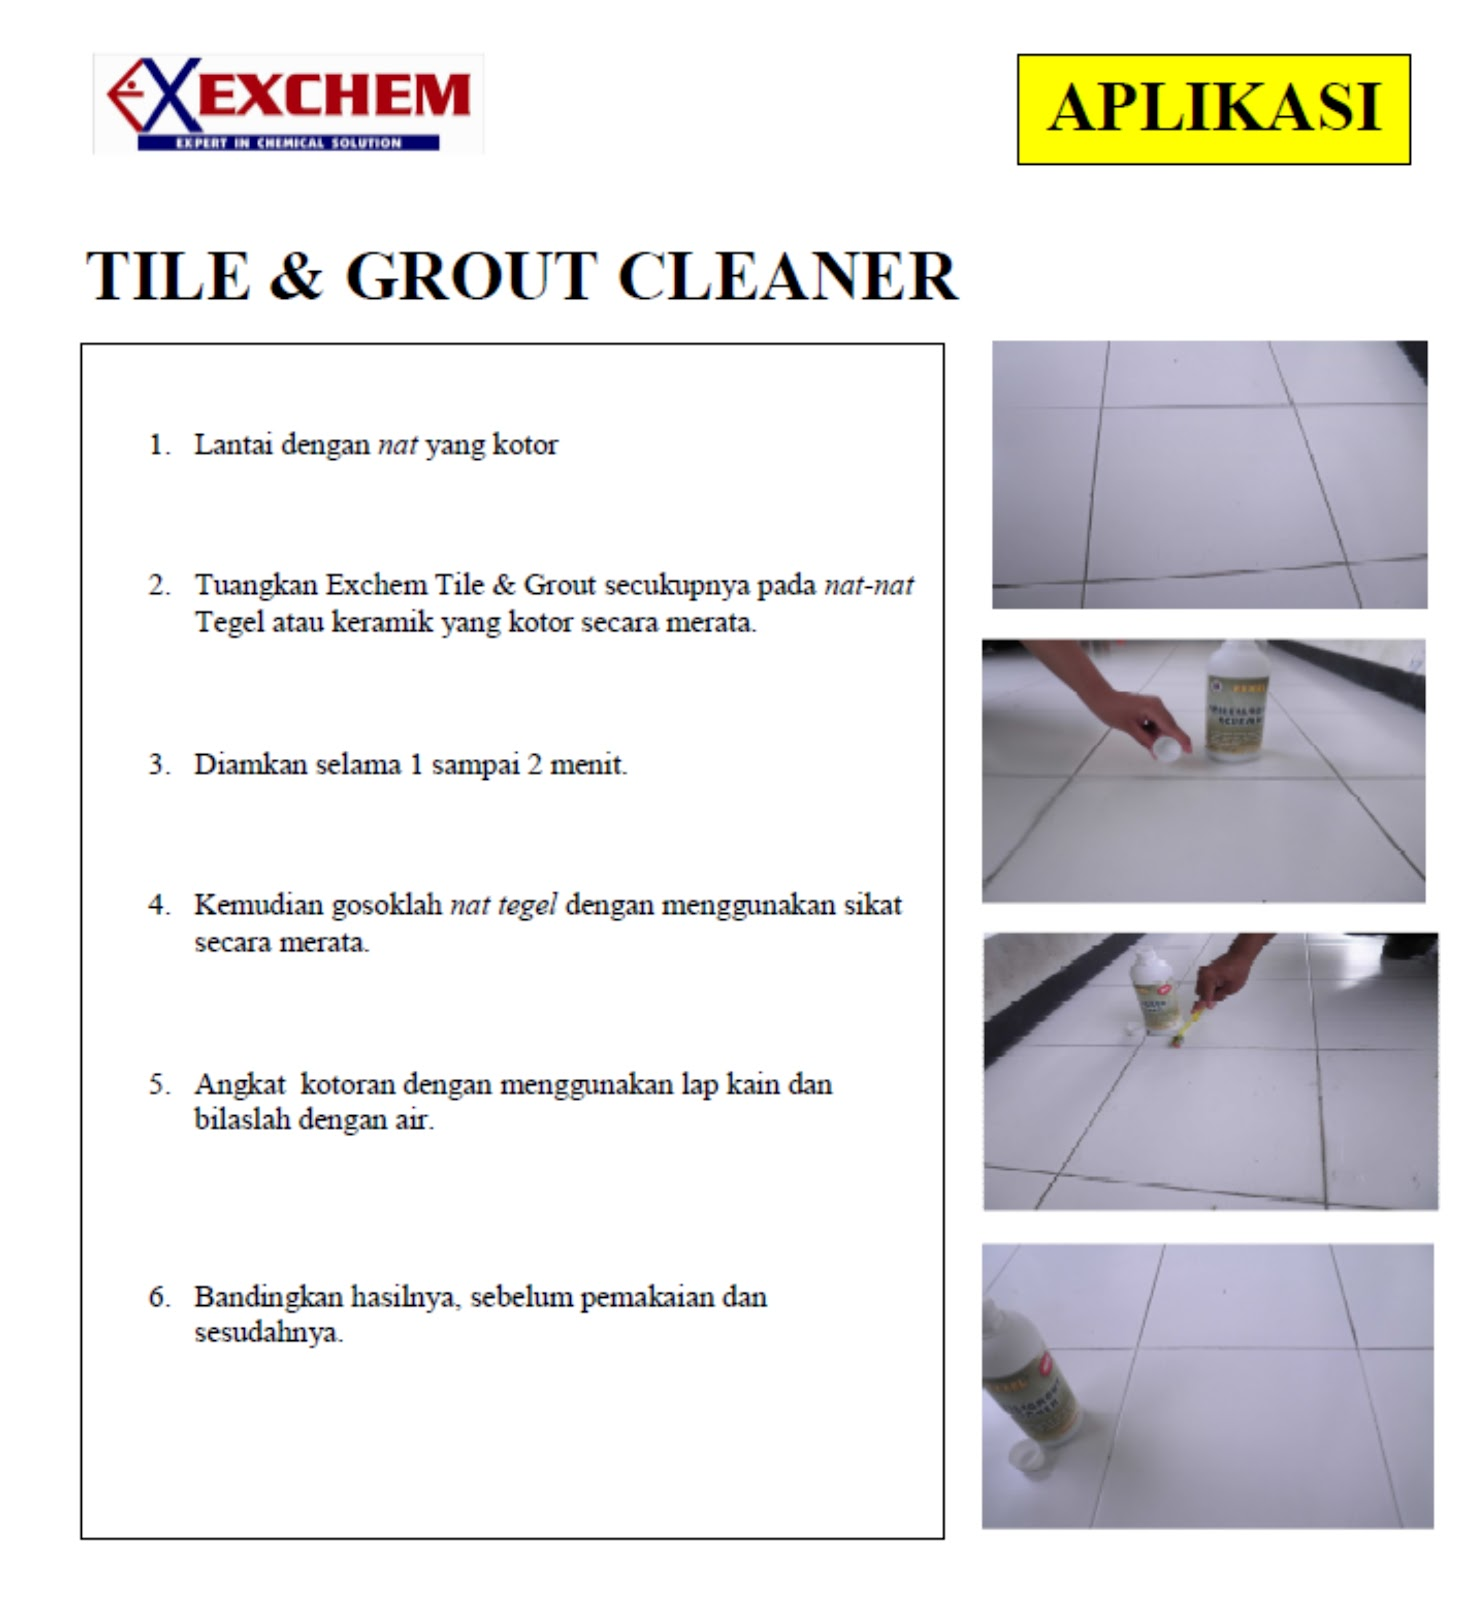 Safeclean other products - Clean tile grout efficiently ...